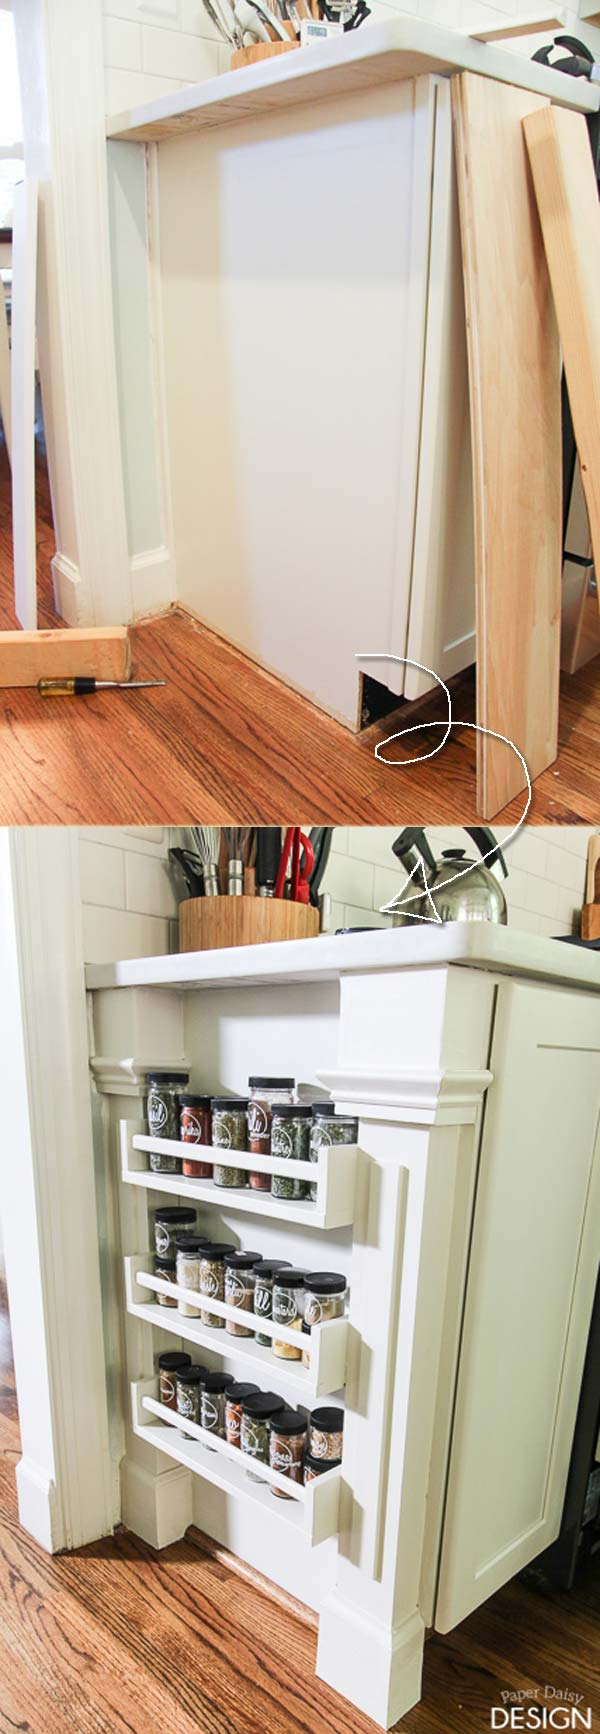 Top 9 Awesome Ideas to Use Narrow or Dead Space in Kitchen ...